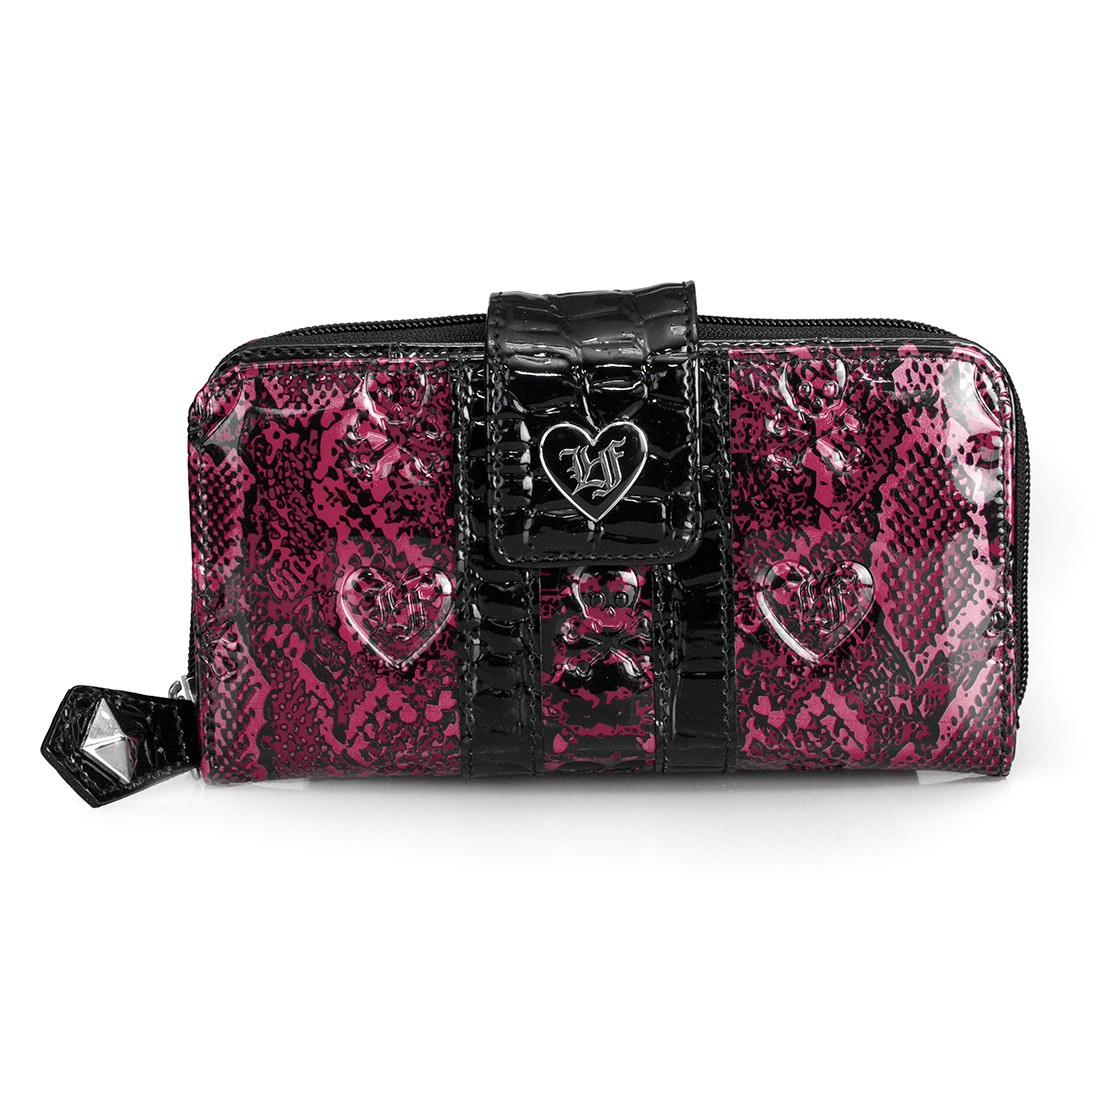 Loungefly Snake Skin Wallet Embossed Patent Clutch Shiny Black Pink